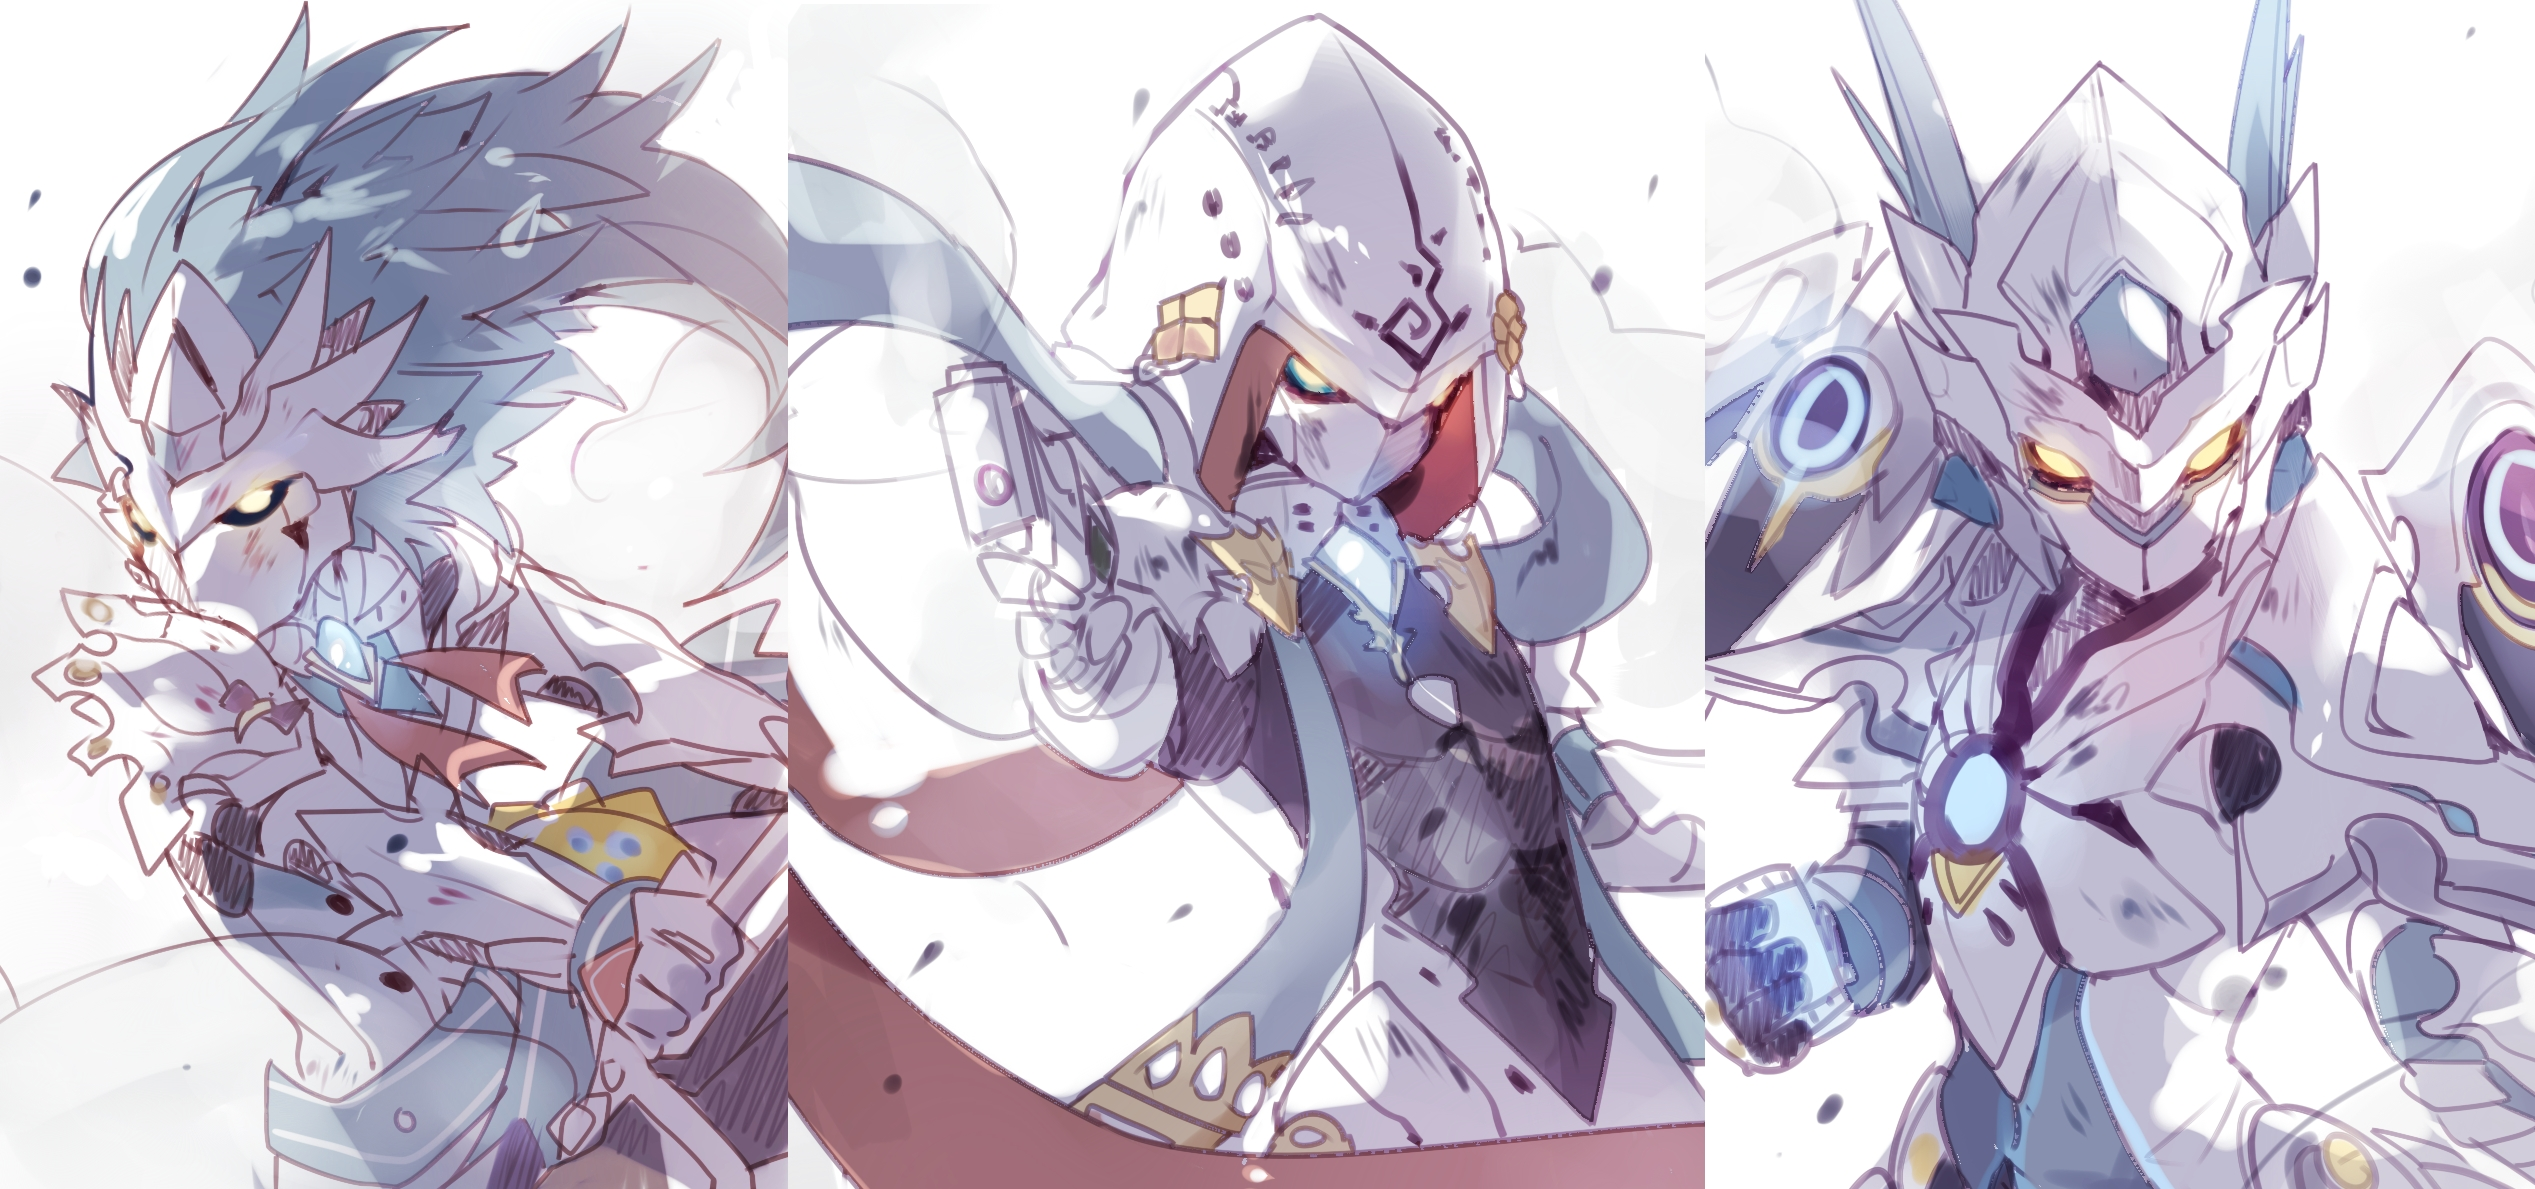 Tactical Trooper Chung Chung Elsword Zerochan Anime Image Board